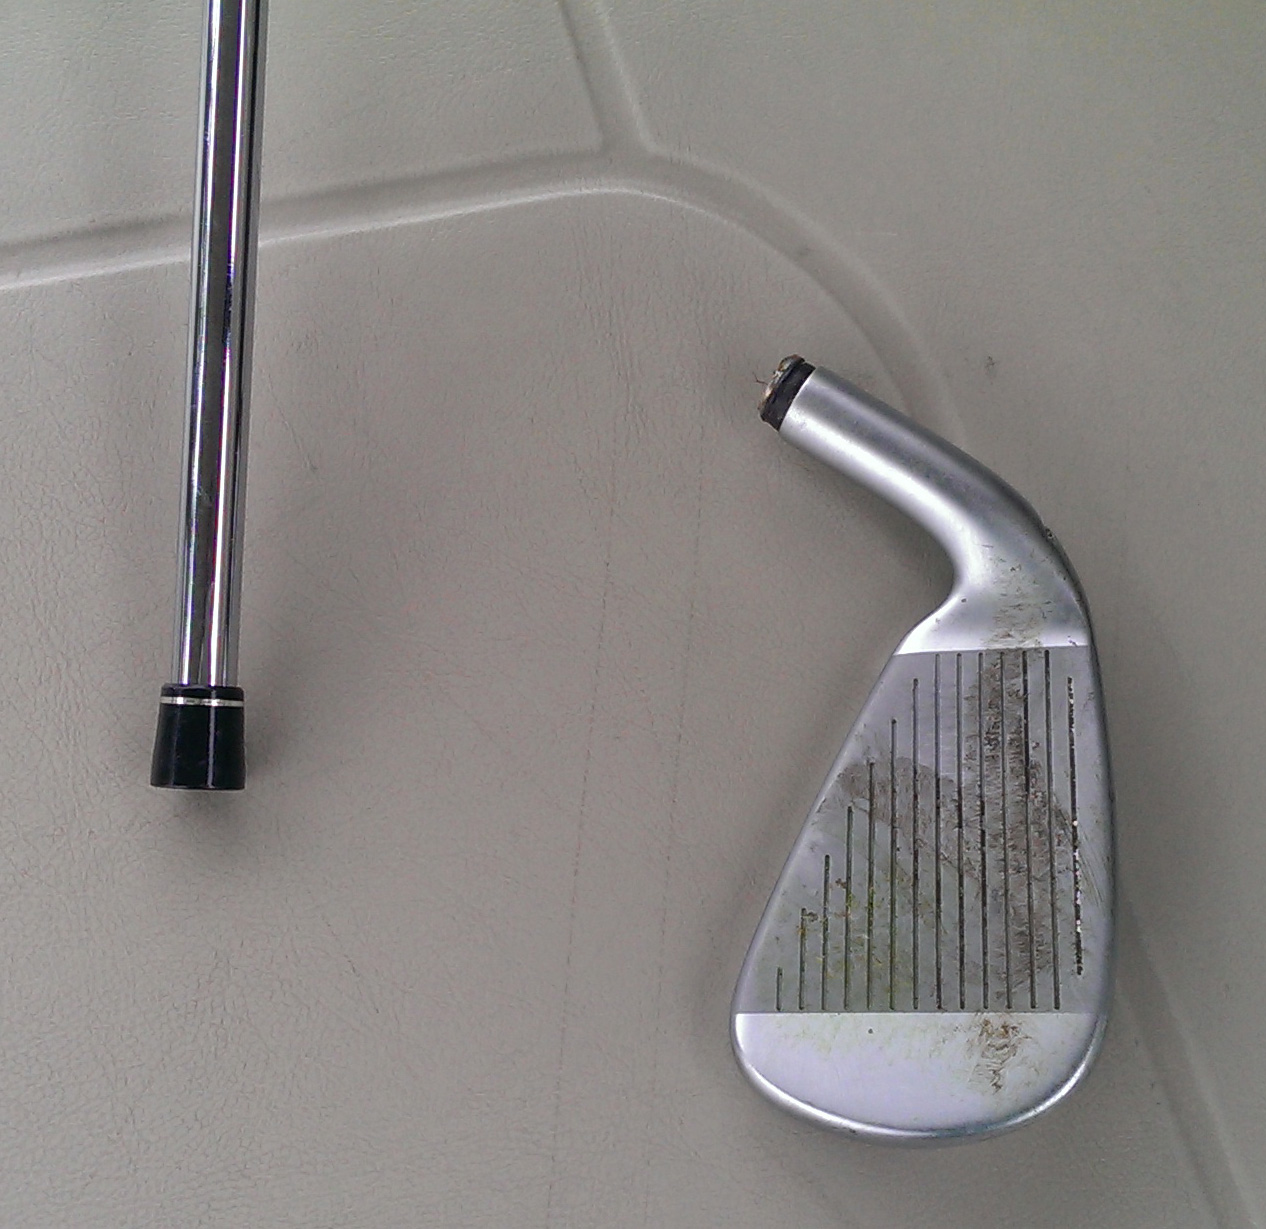 Snapped my 3-iron.